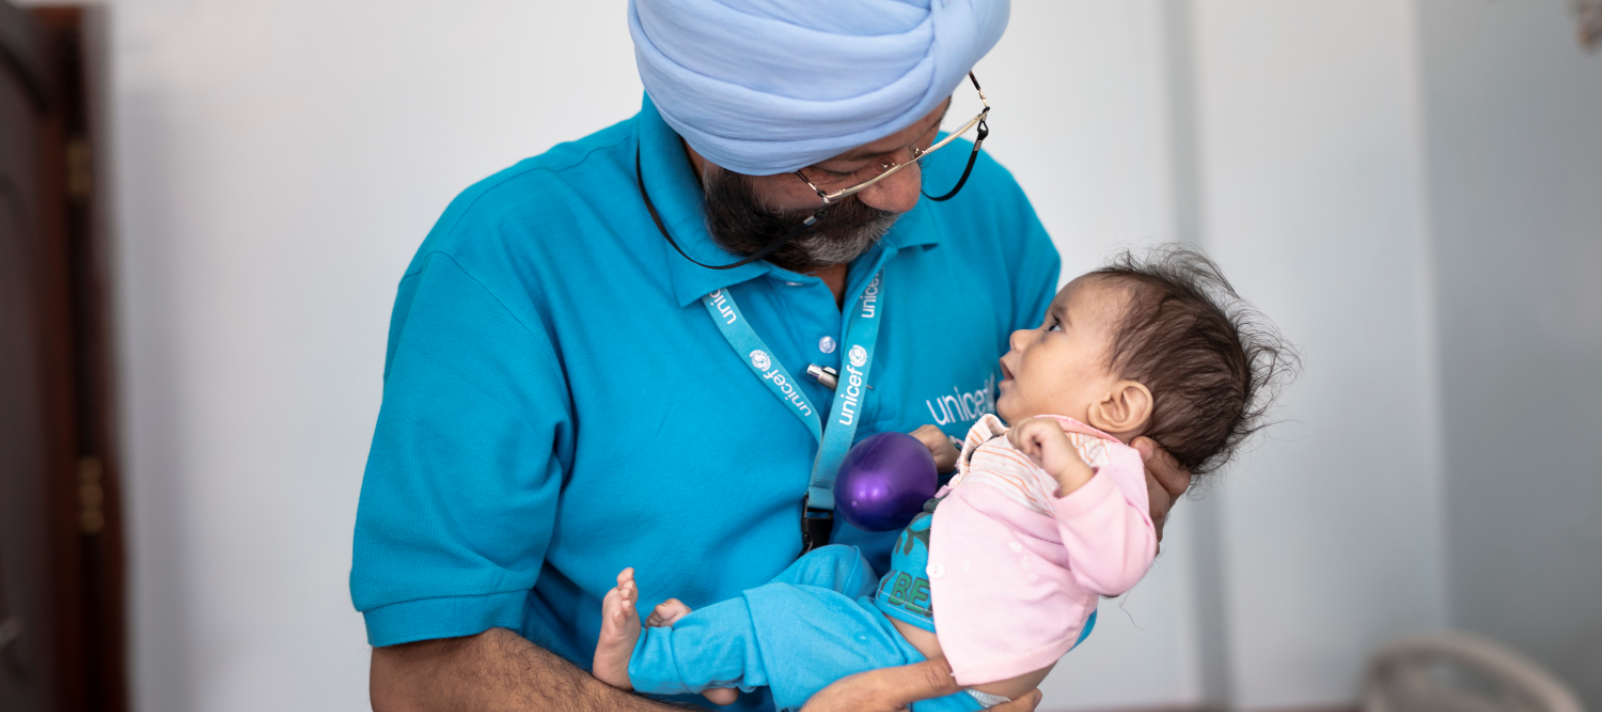 A UNICEF staff holding a baby.